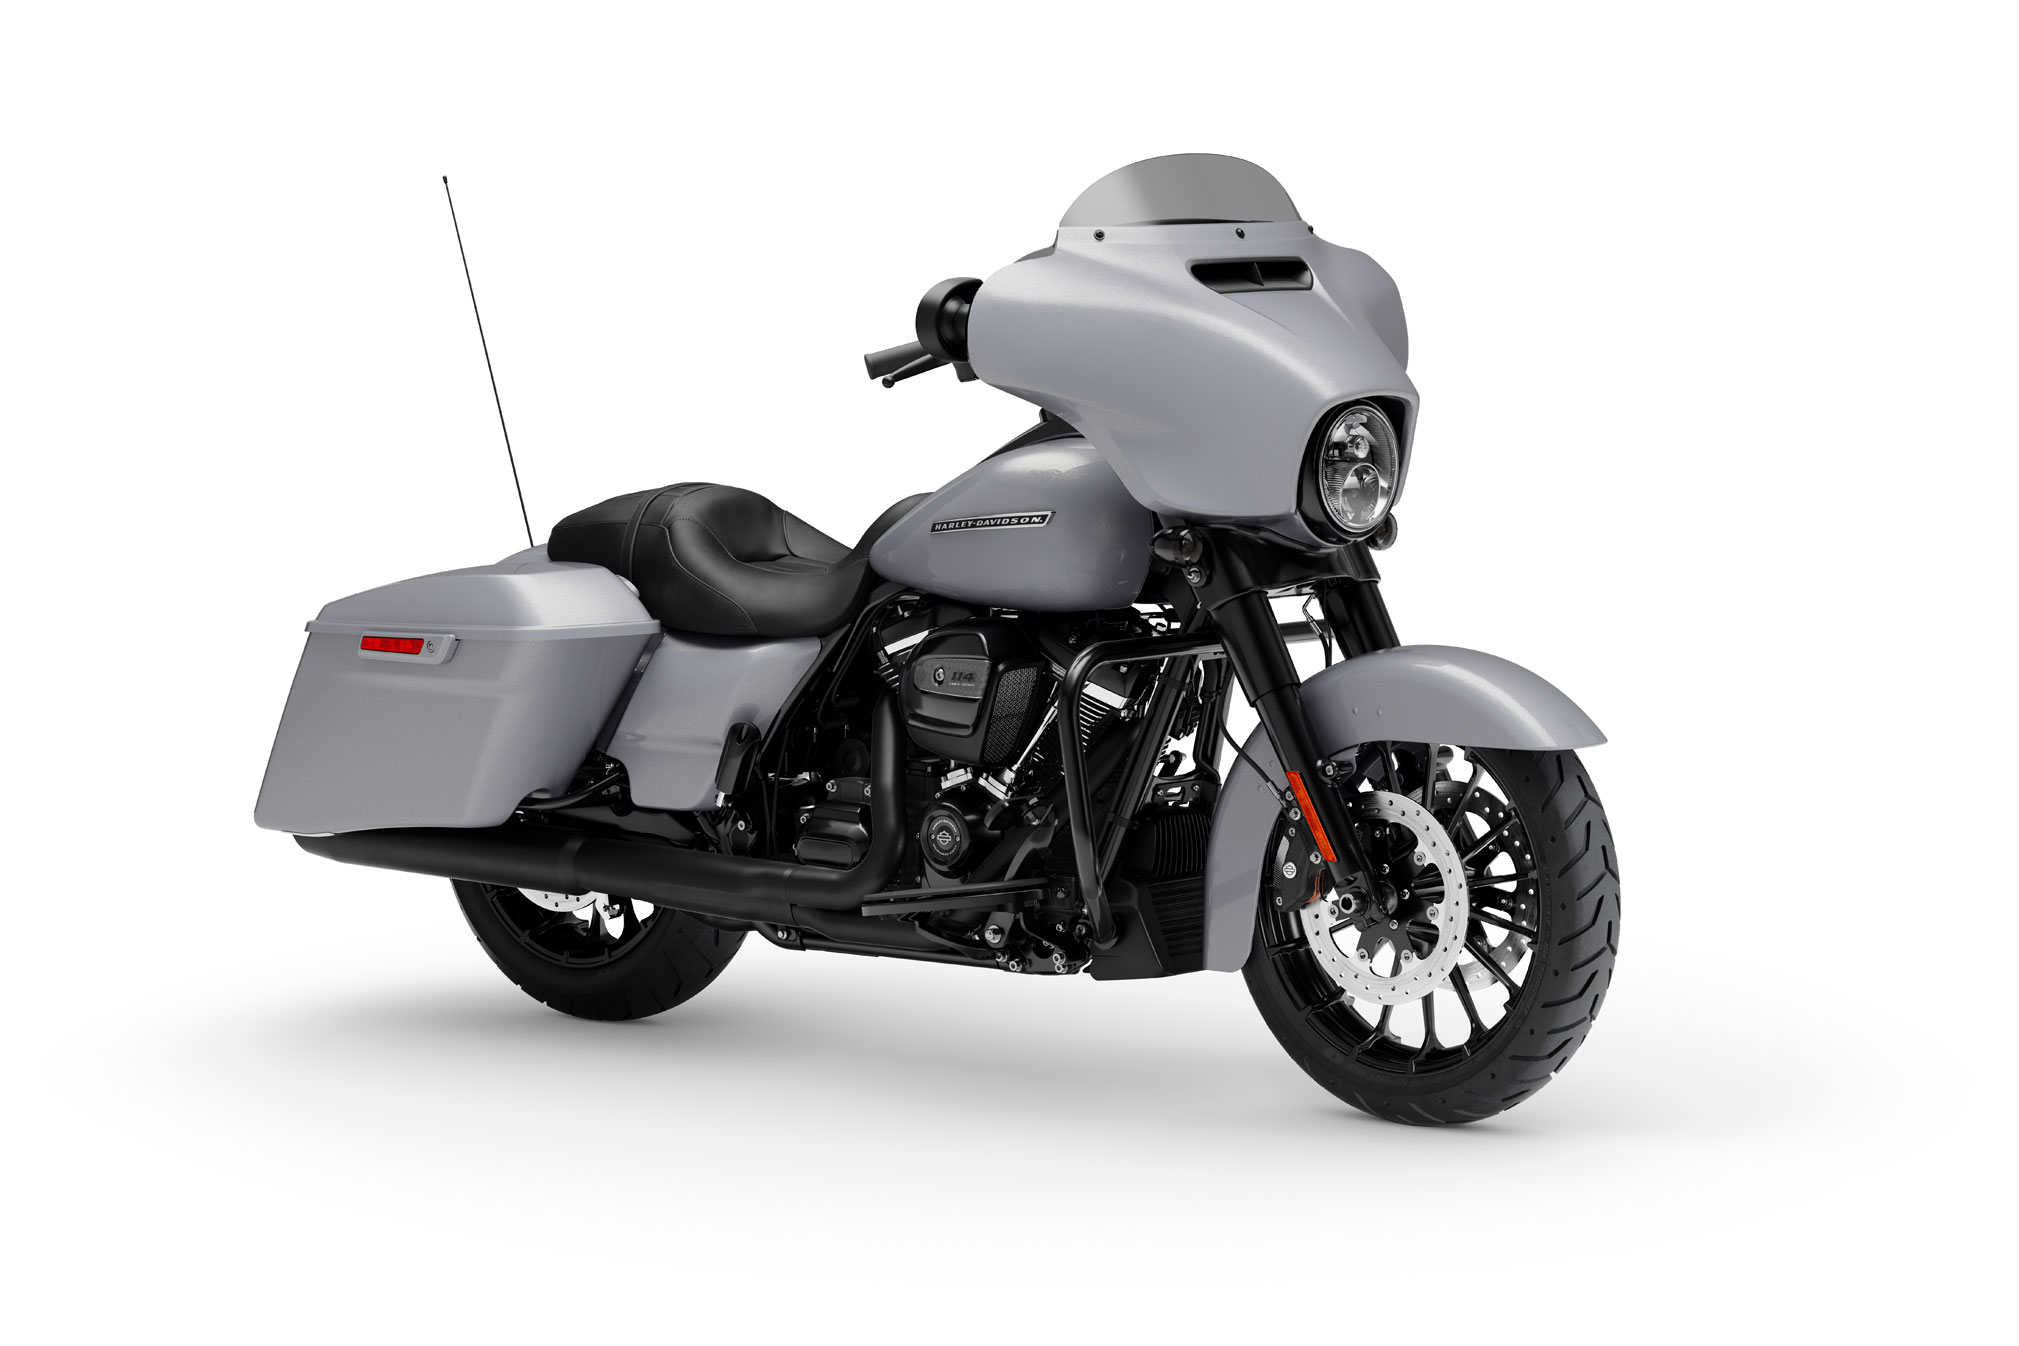 2019 Harley Davidson Street Glide Special Guide Total Motorcycle